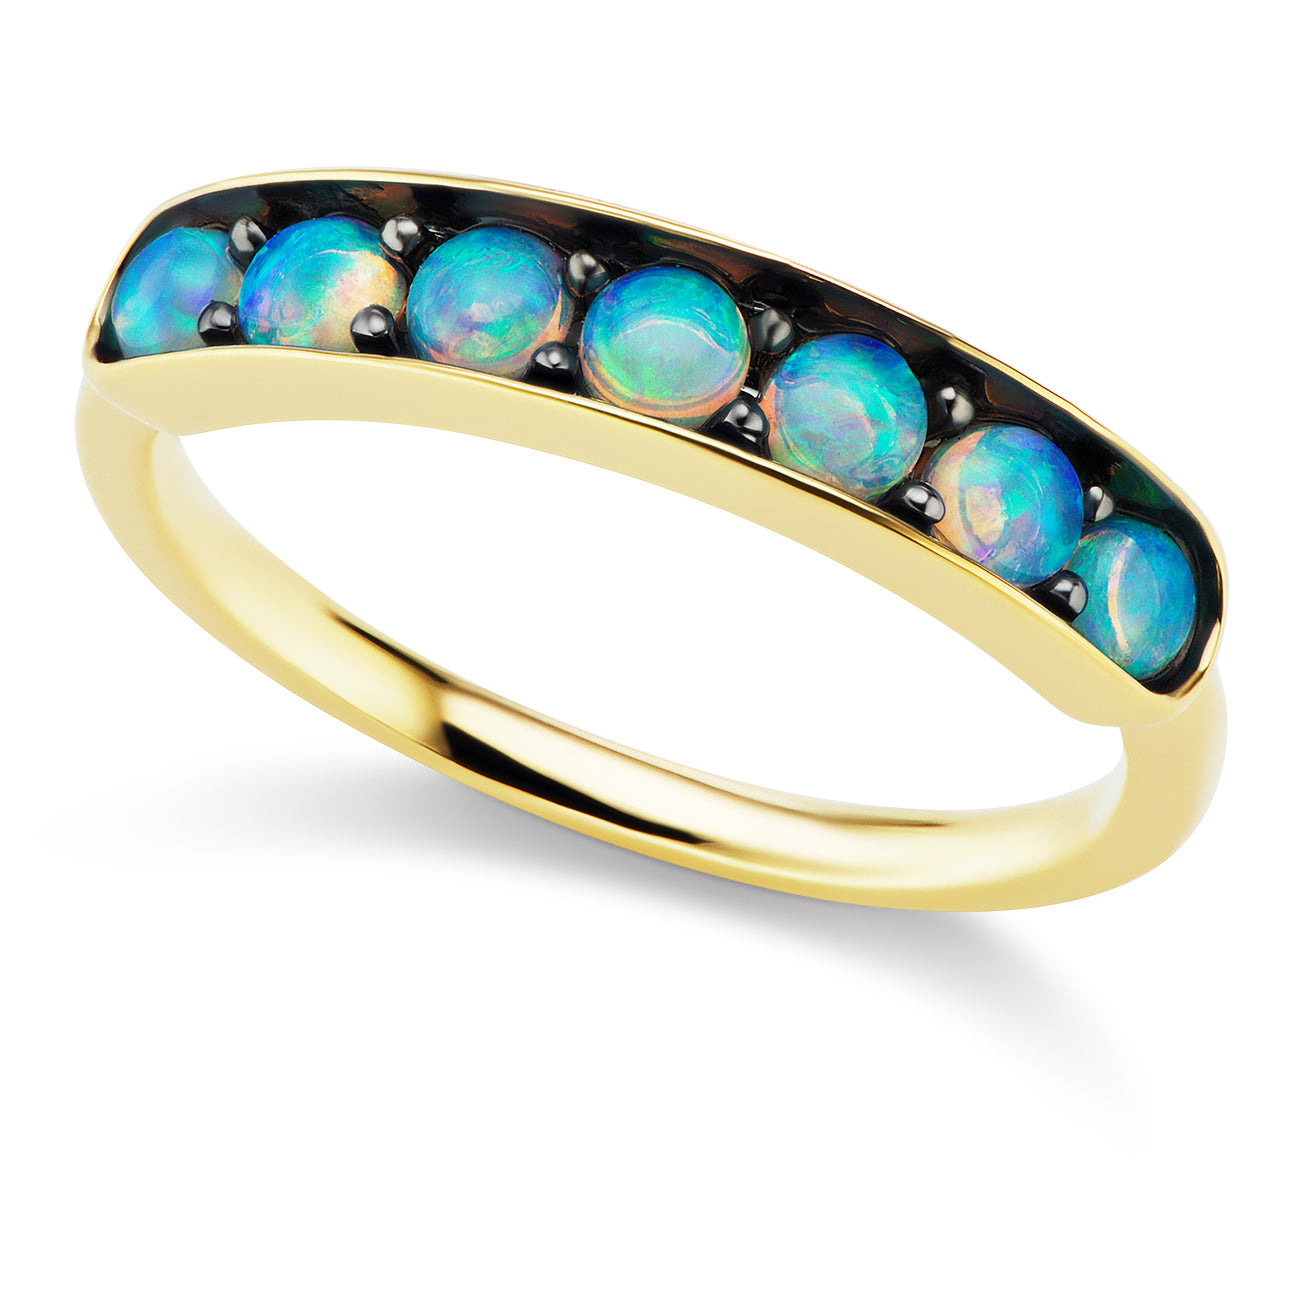 Jane Taylor Cirque Large Half Eternity Band with Opal Cabochons